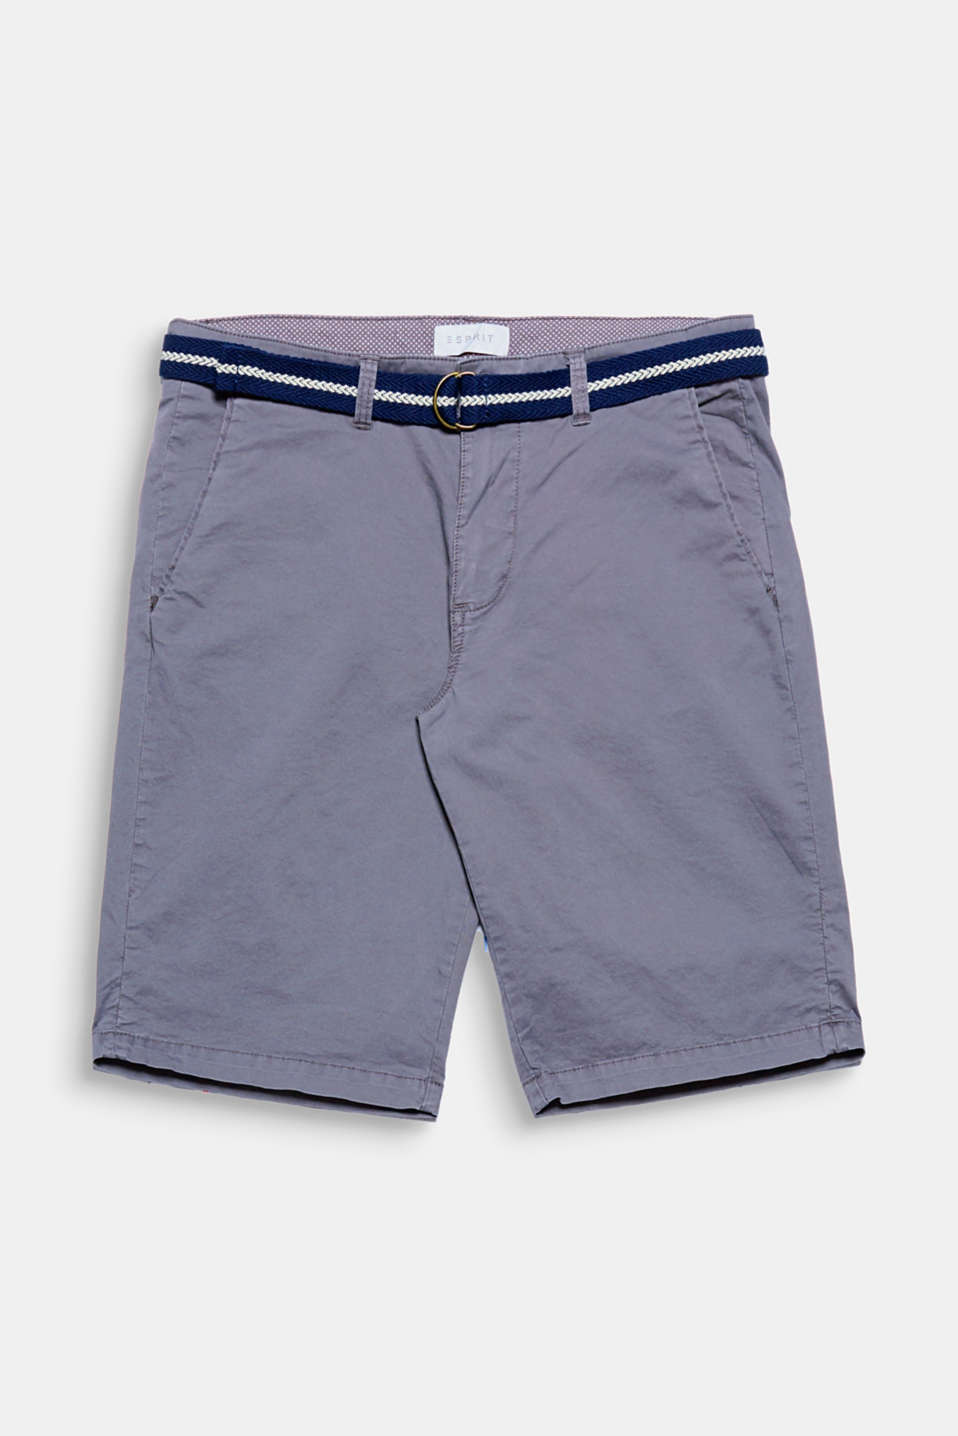 The nautical striped woven belt gives these shorts a sporty look.